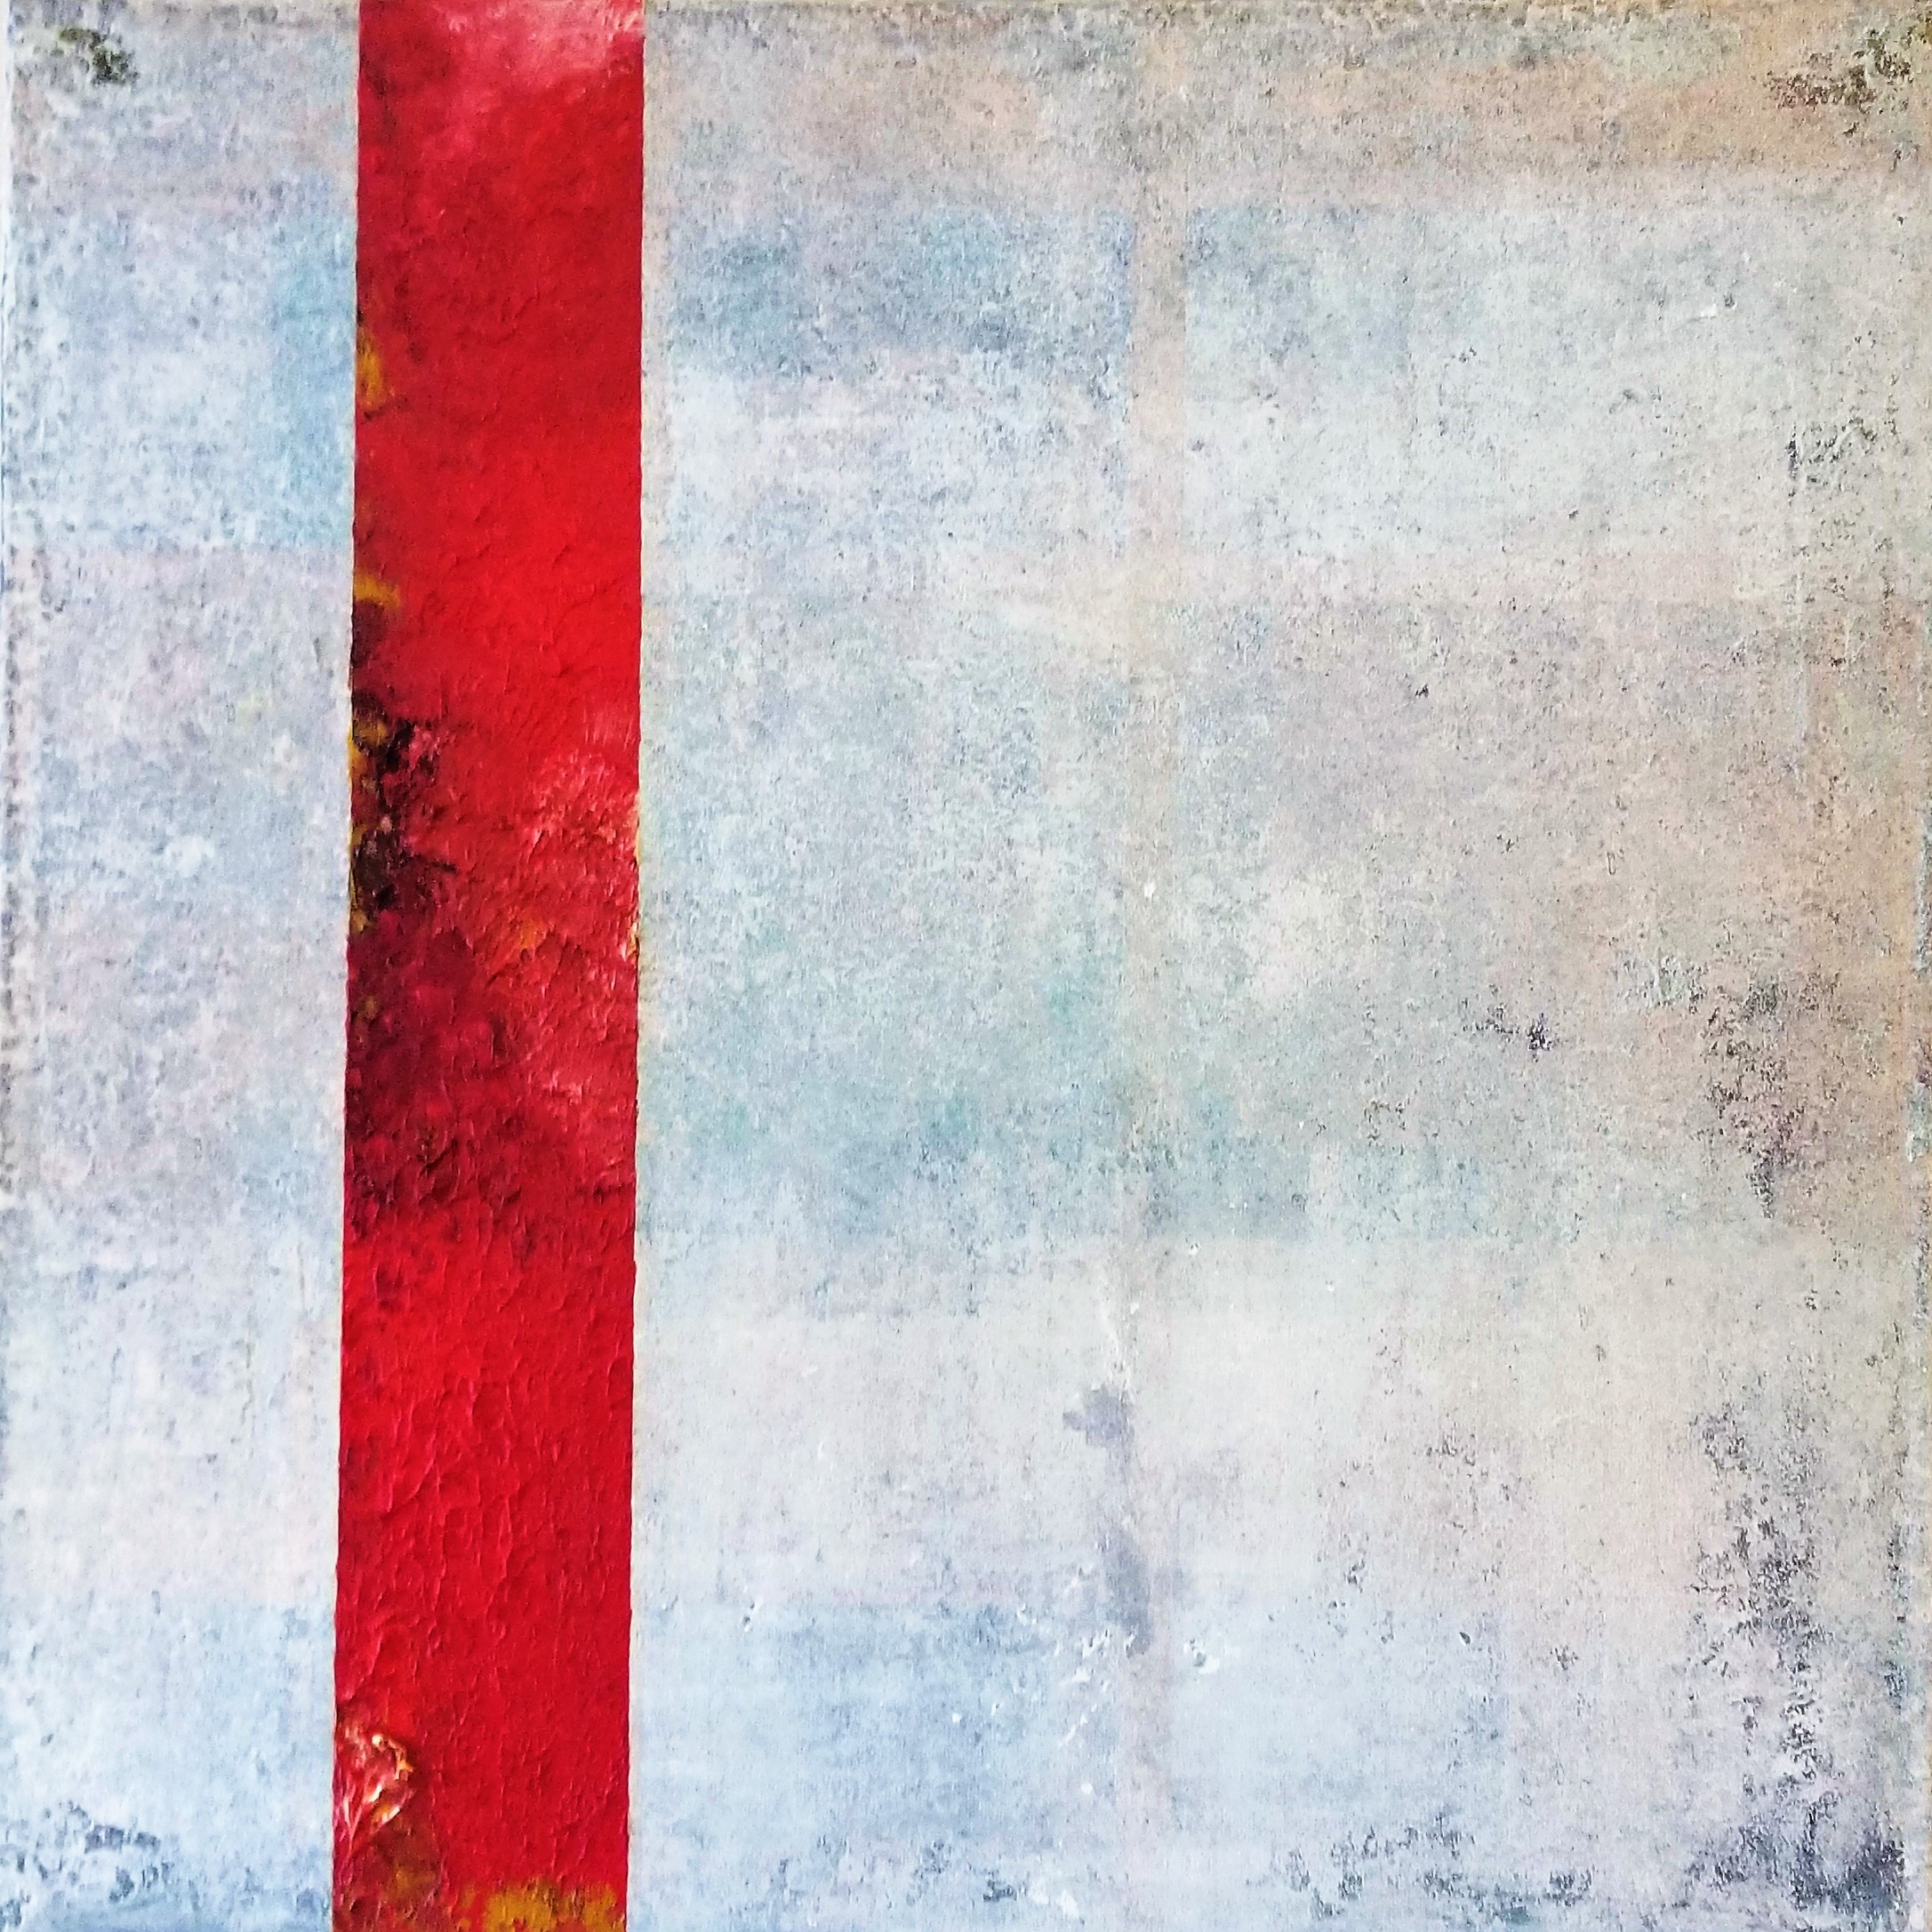 Red Strip on White Untitled 2, 2018